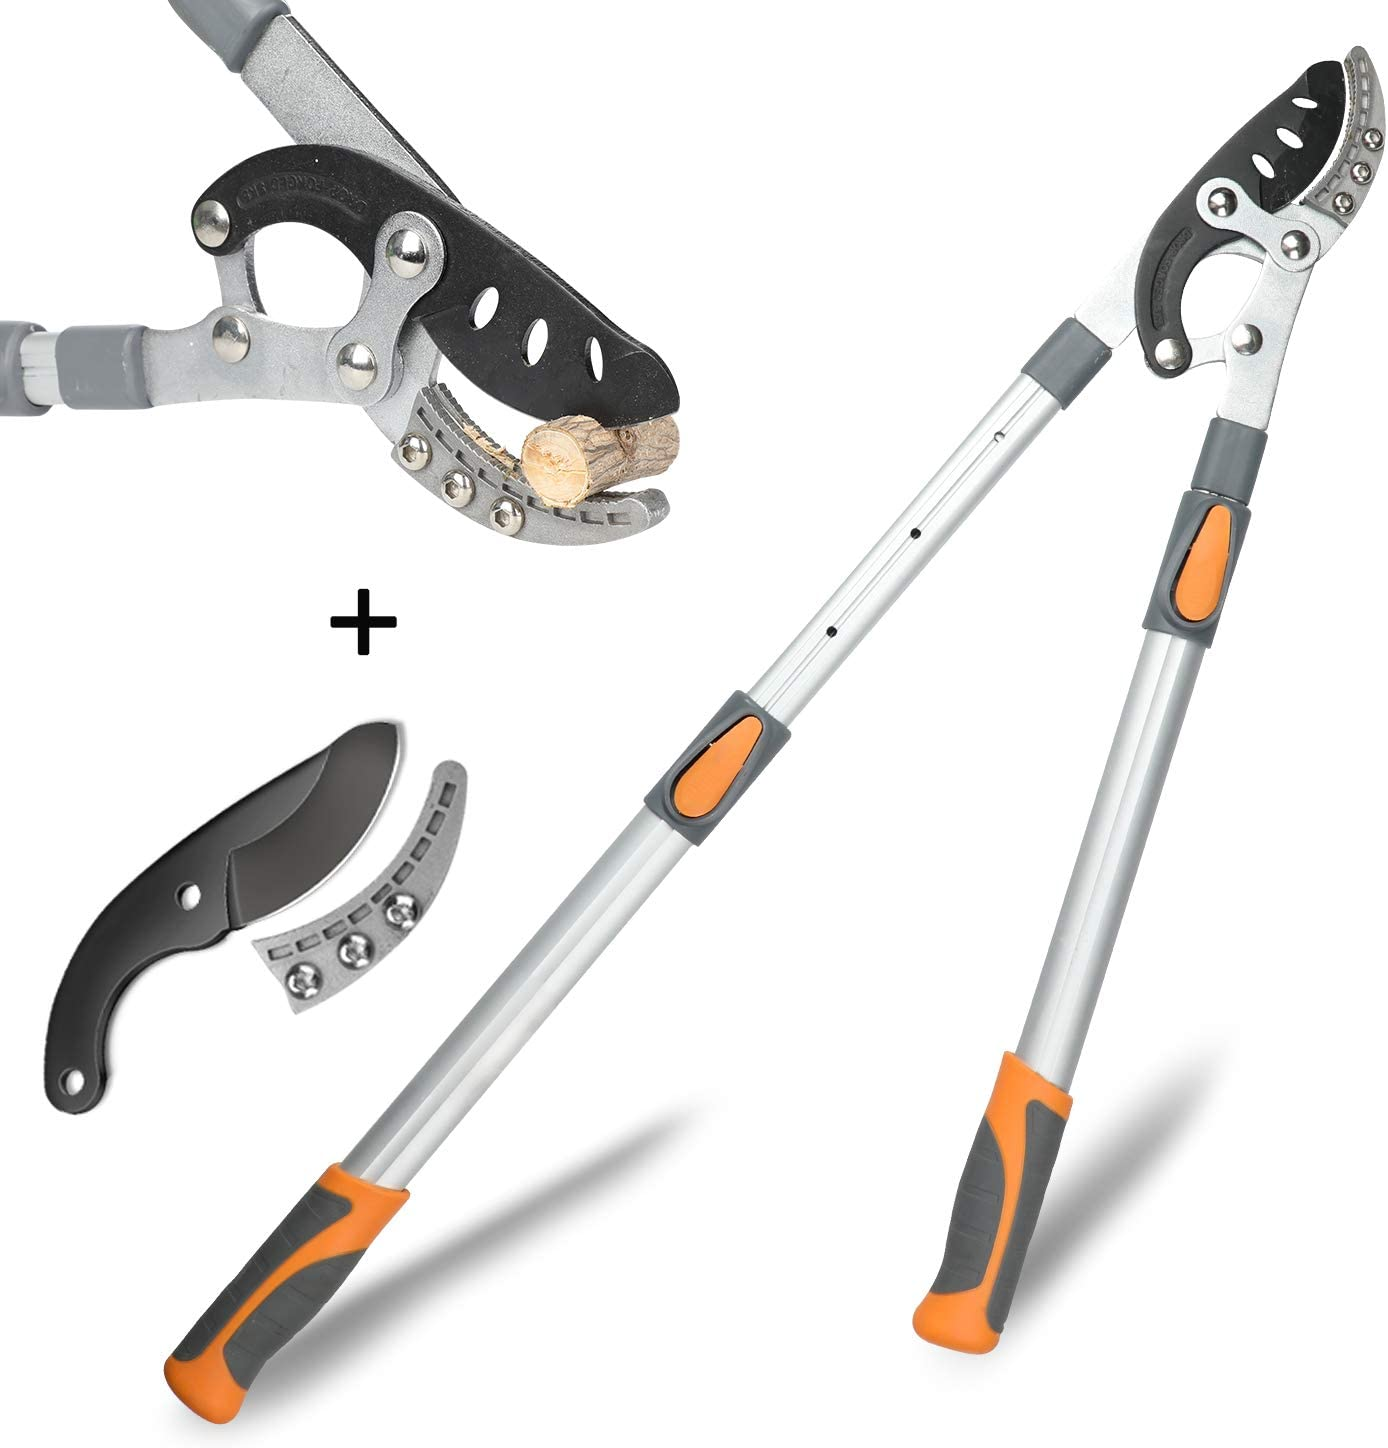 AIRAJ Bypass Lopper with Compound Action, Chops Thick Branches with Ease, Adjustable Heavy Duty Tree Trimmer, Branch Cutter with Clean Cut Capacity